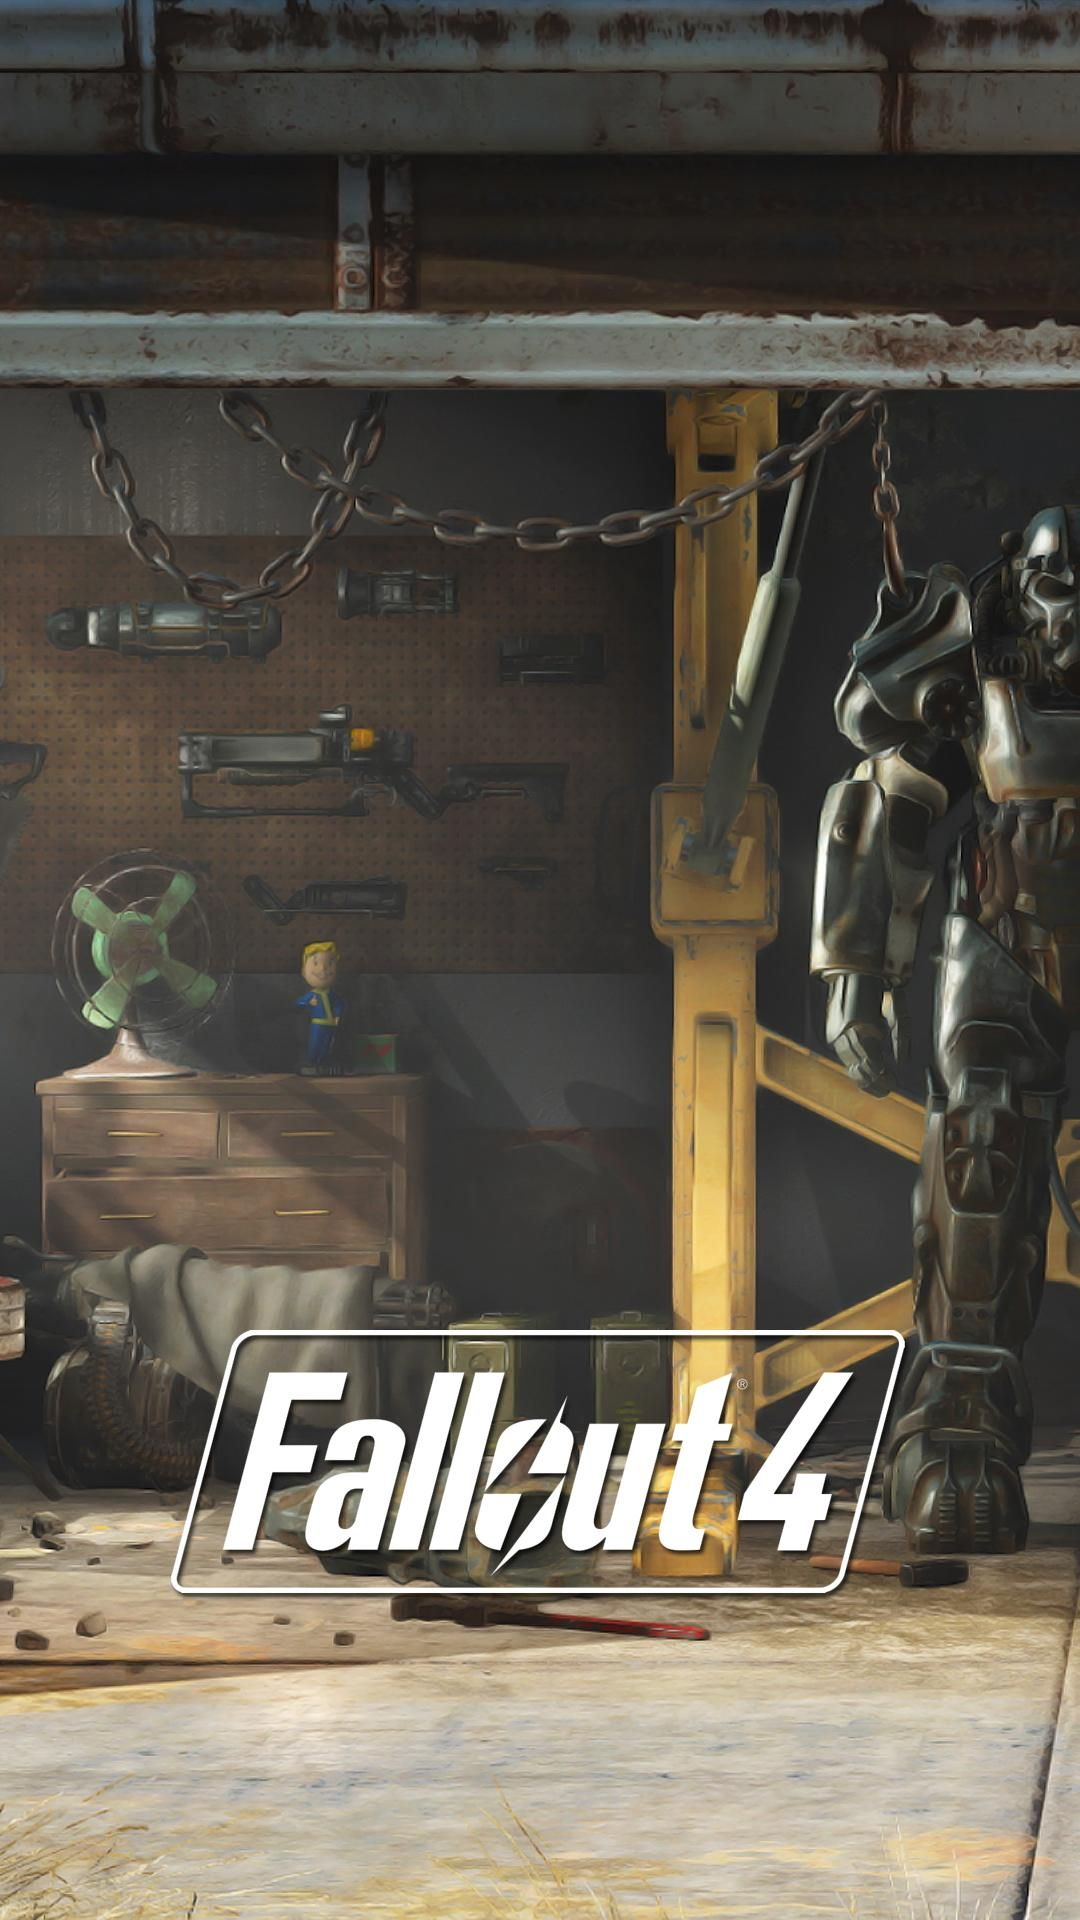 I Made Some Fallout 4 Lock Screen Wallpapers From E3 Stills Geeky